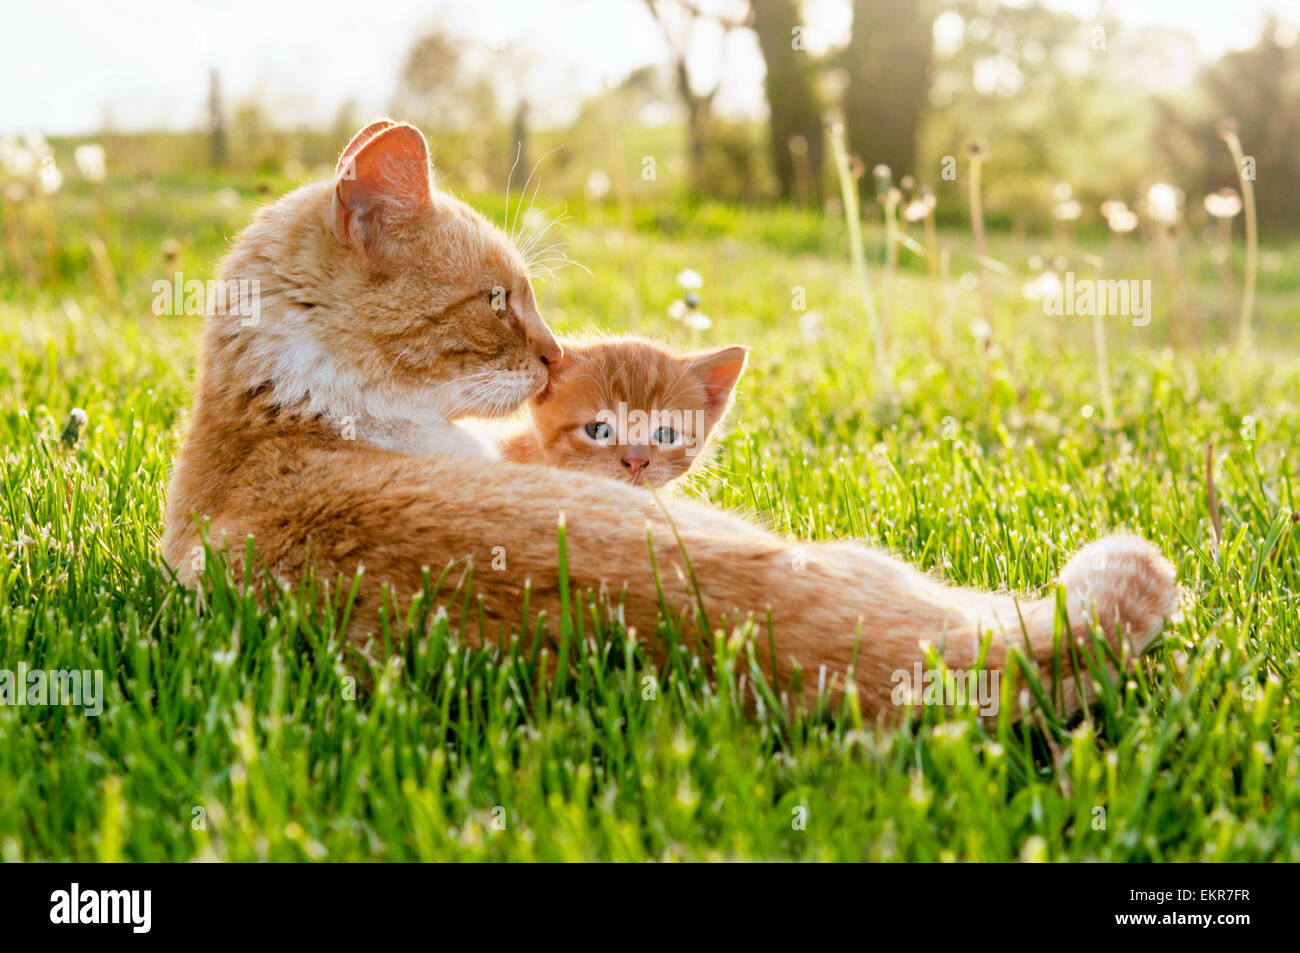 Momma cat peeking kitten - Stock Image